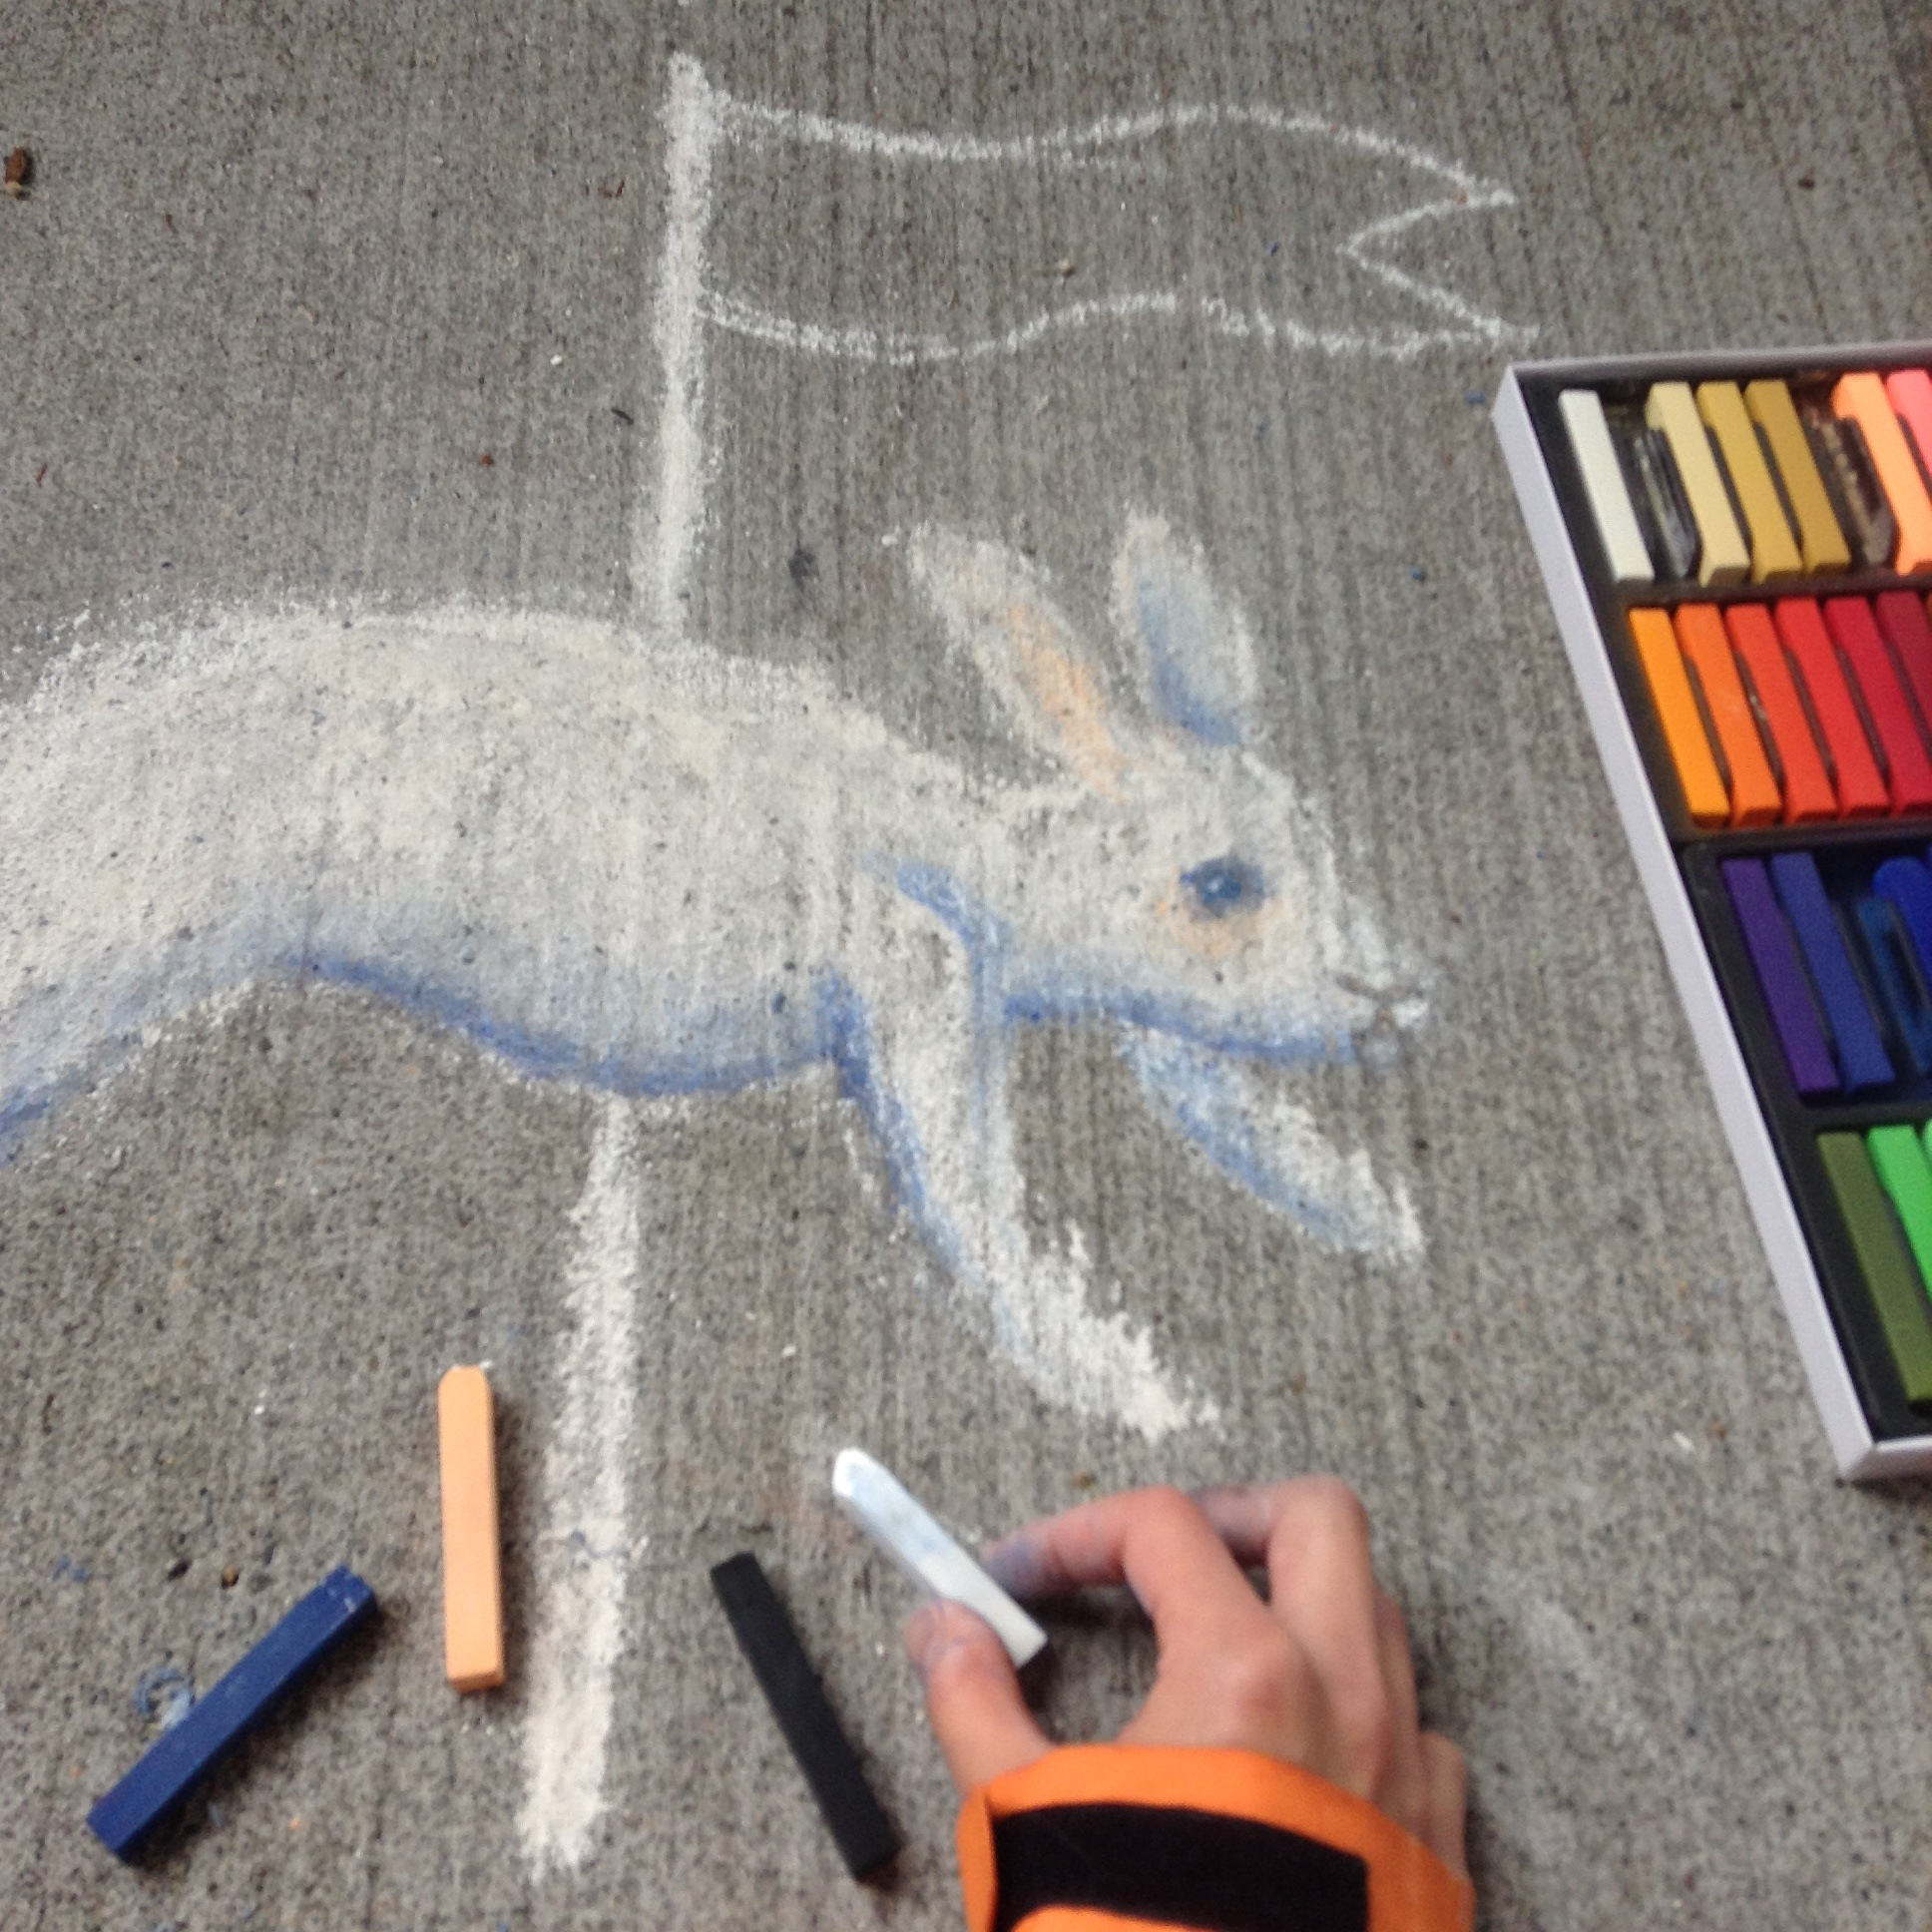 Chalk art story hunt event is going to be fabulous this June 17th.  Sign up for the event to get updates at this link !